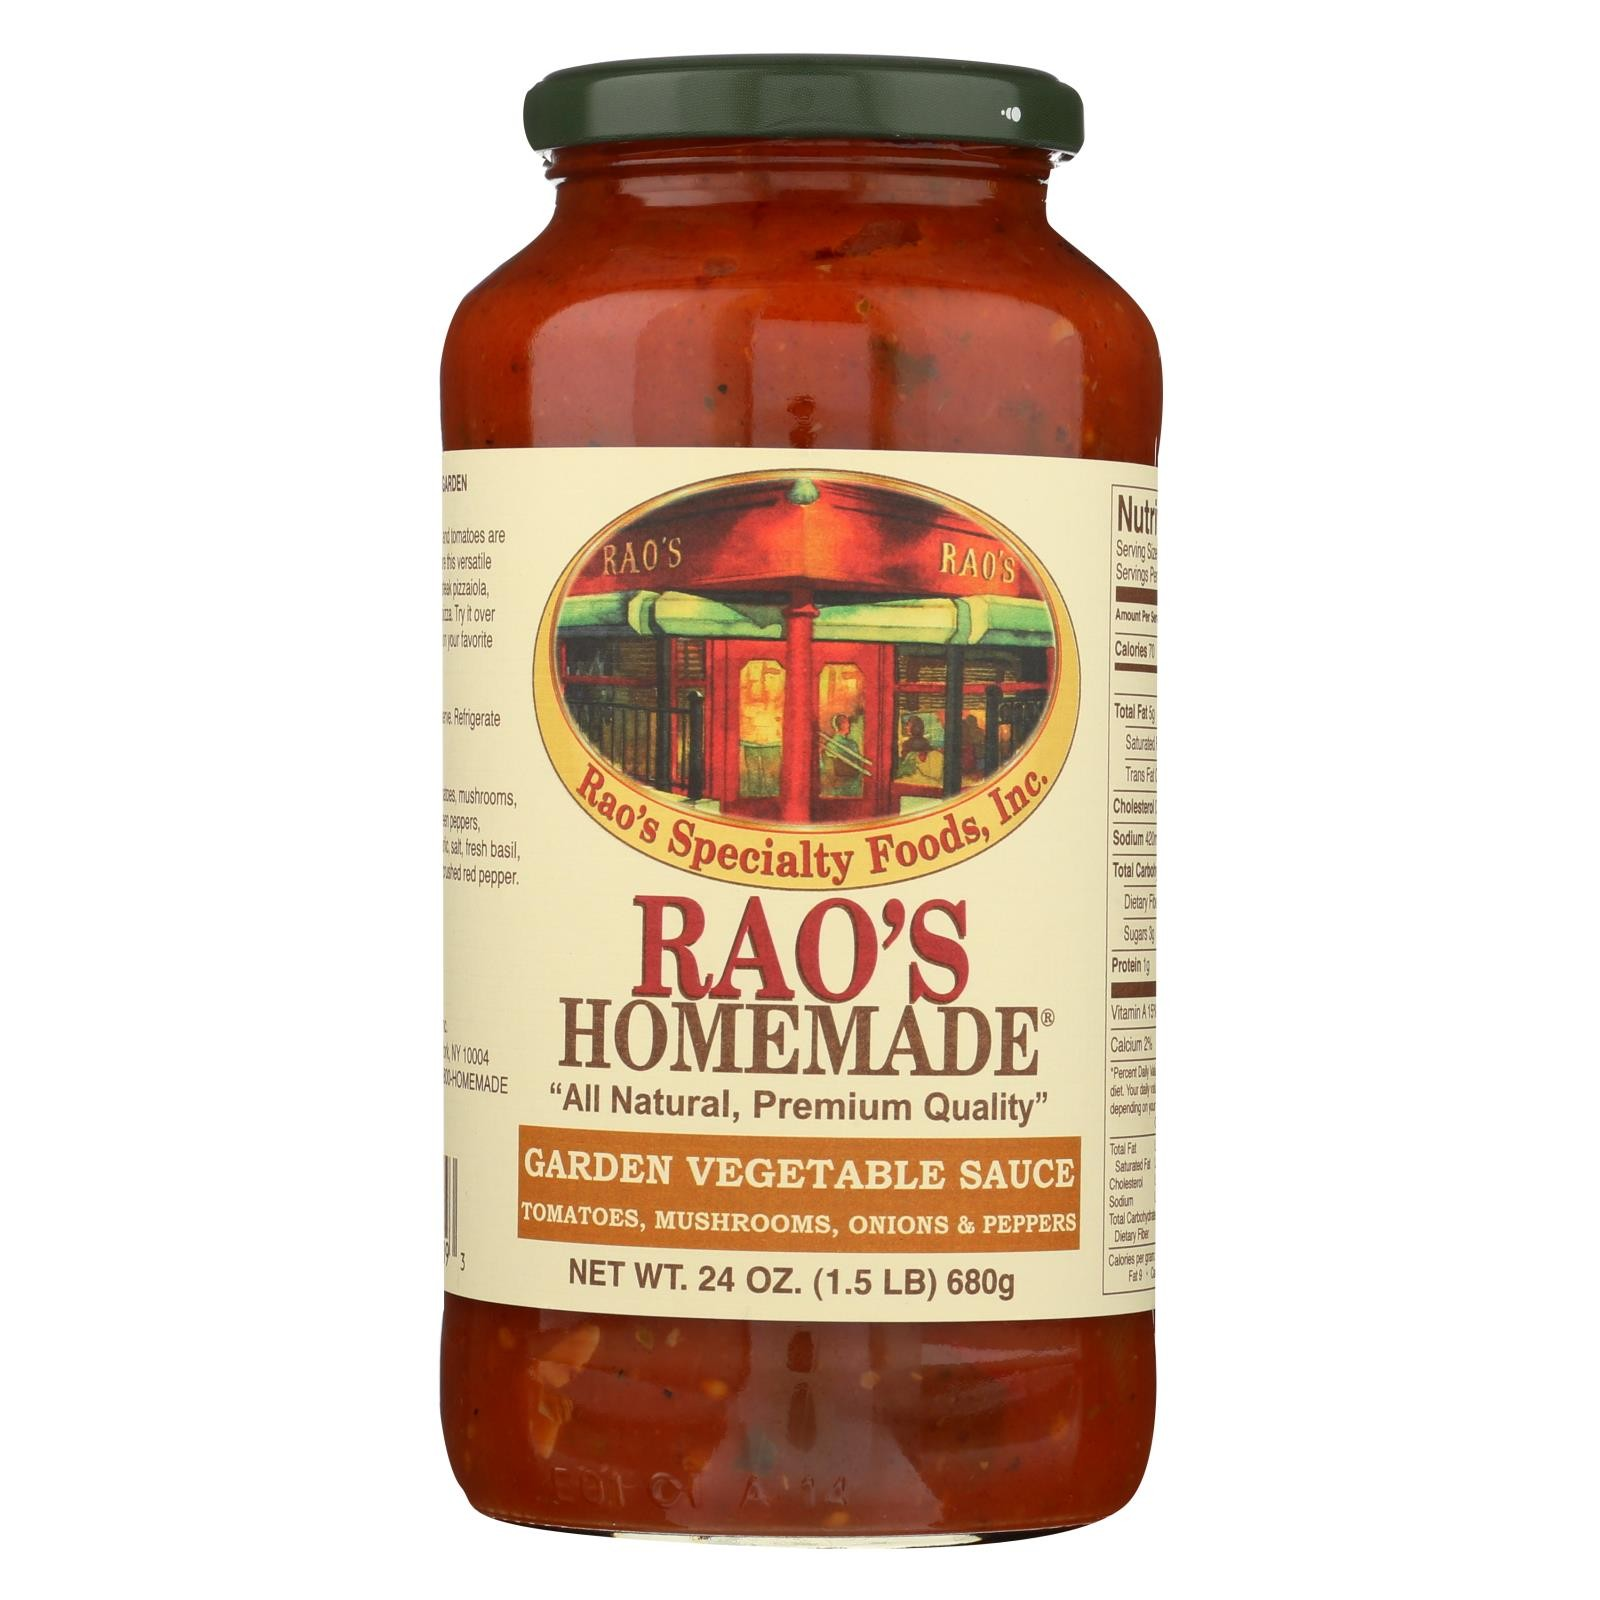 Rao's Specialty Food Homemade Sauce - Peppers And Mushroom - Pack of 12 - 24 Oz.